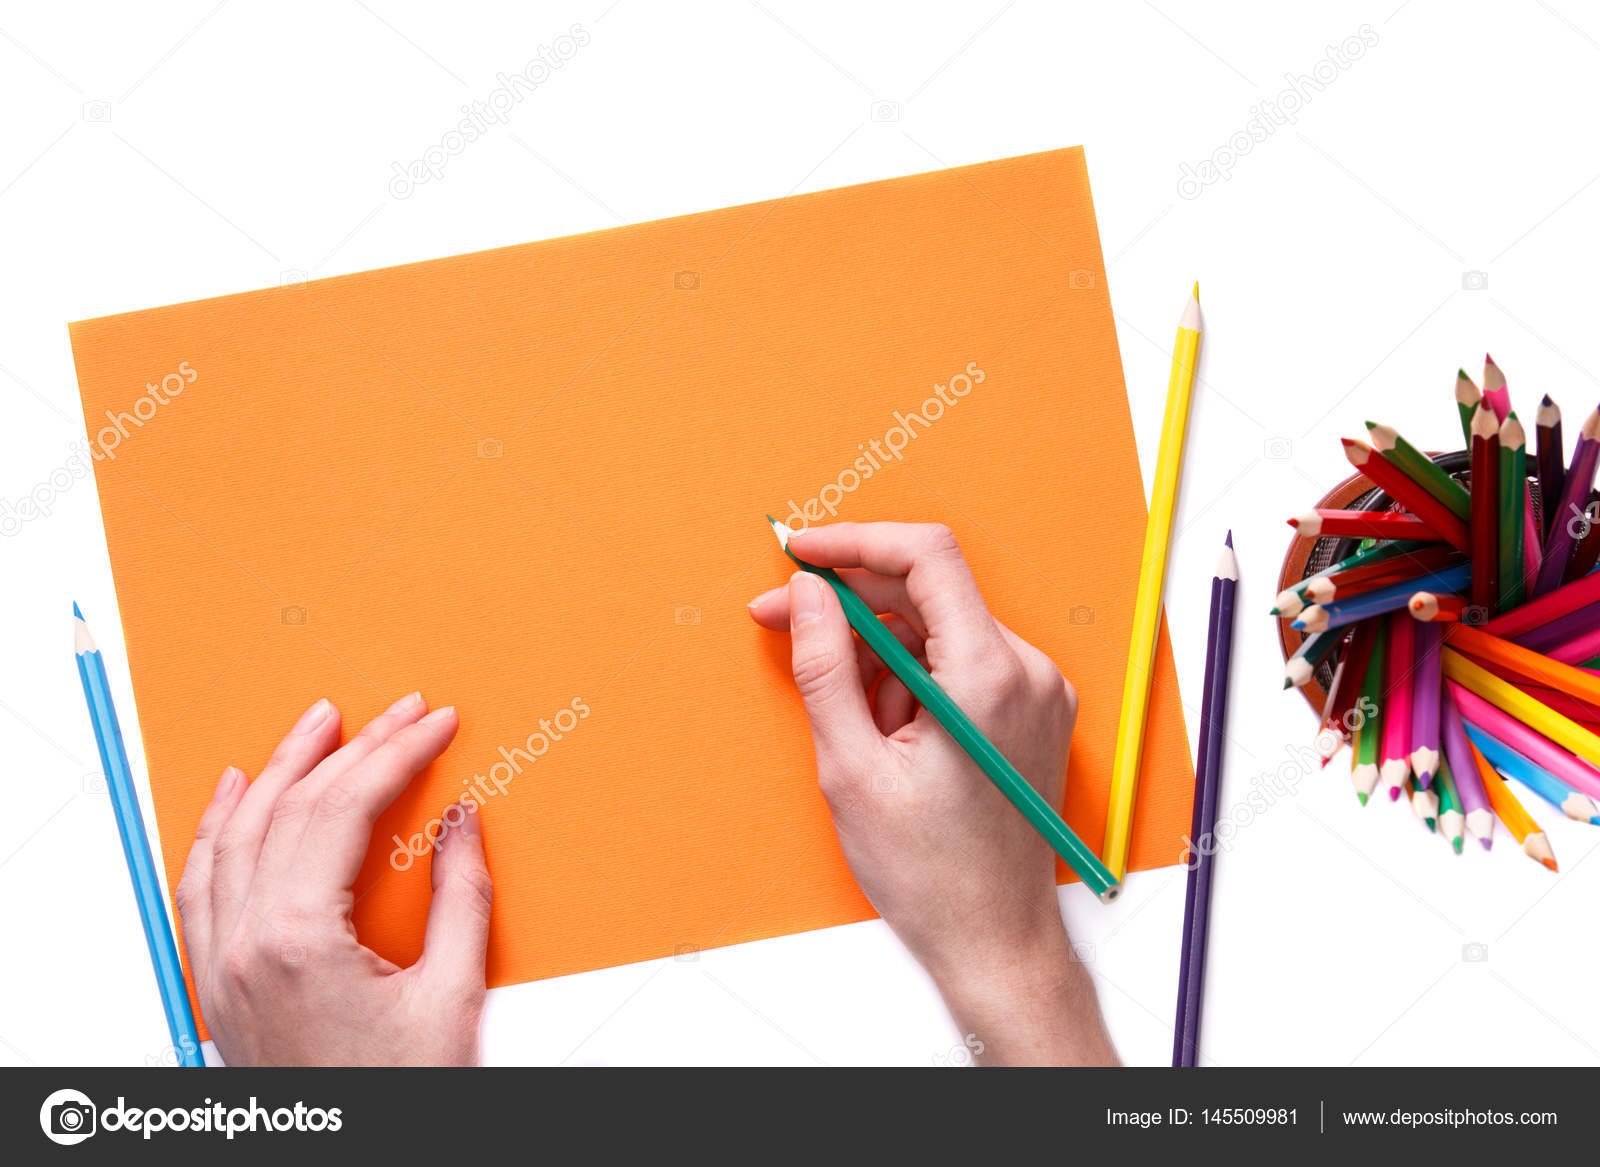 Human hands with pencil drawing something on the orange paper